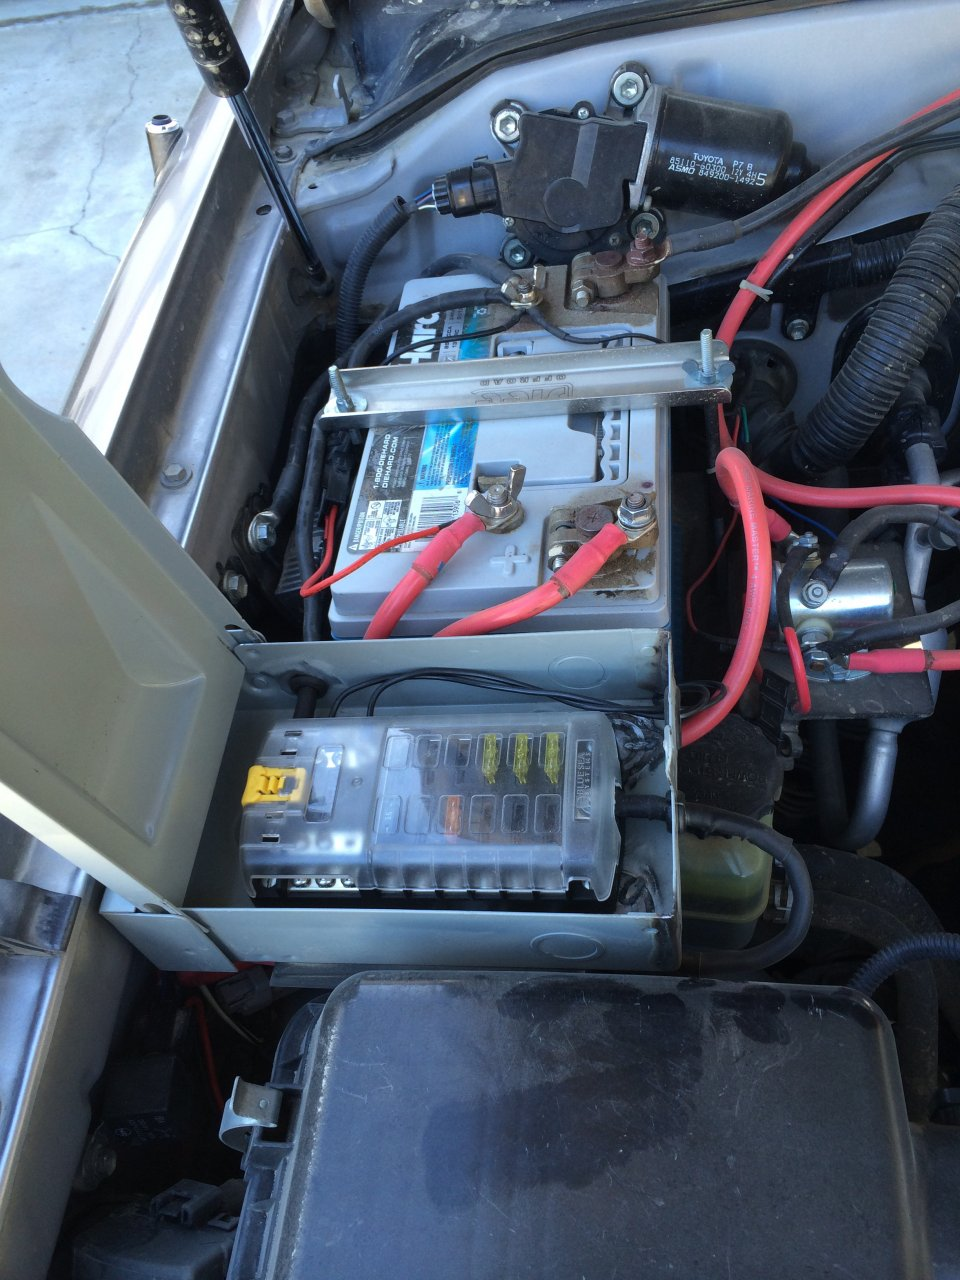 hight resolution of ottawa fuse box wiring diagram todaysottawa fuse box wiring library fuse box diagram 2000 ottawa ottawa